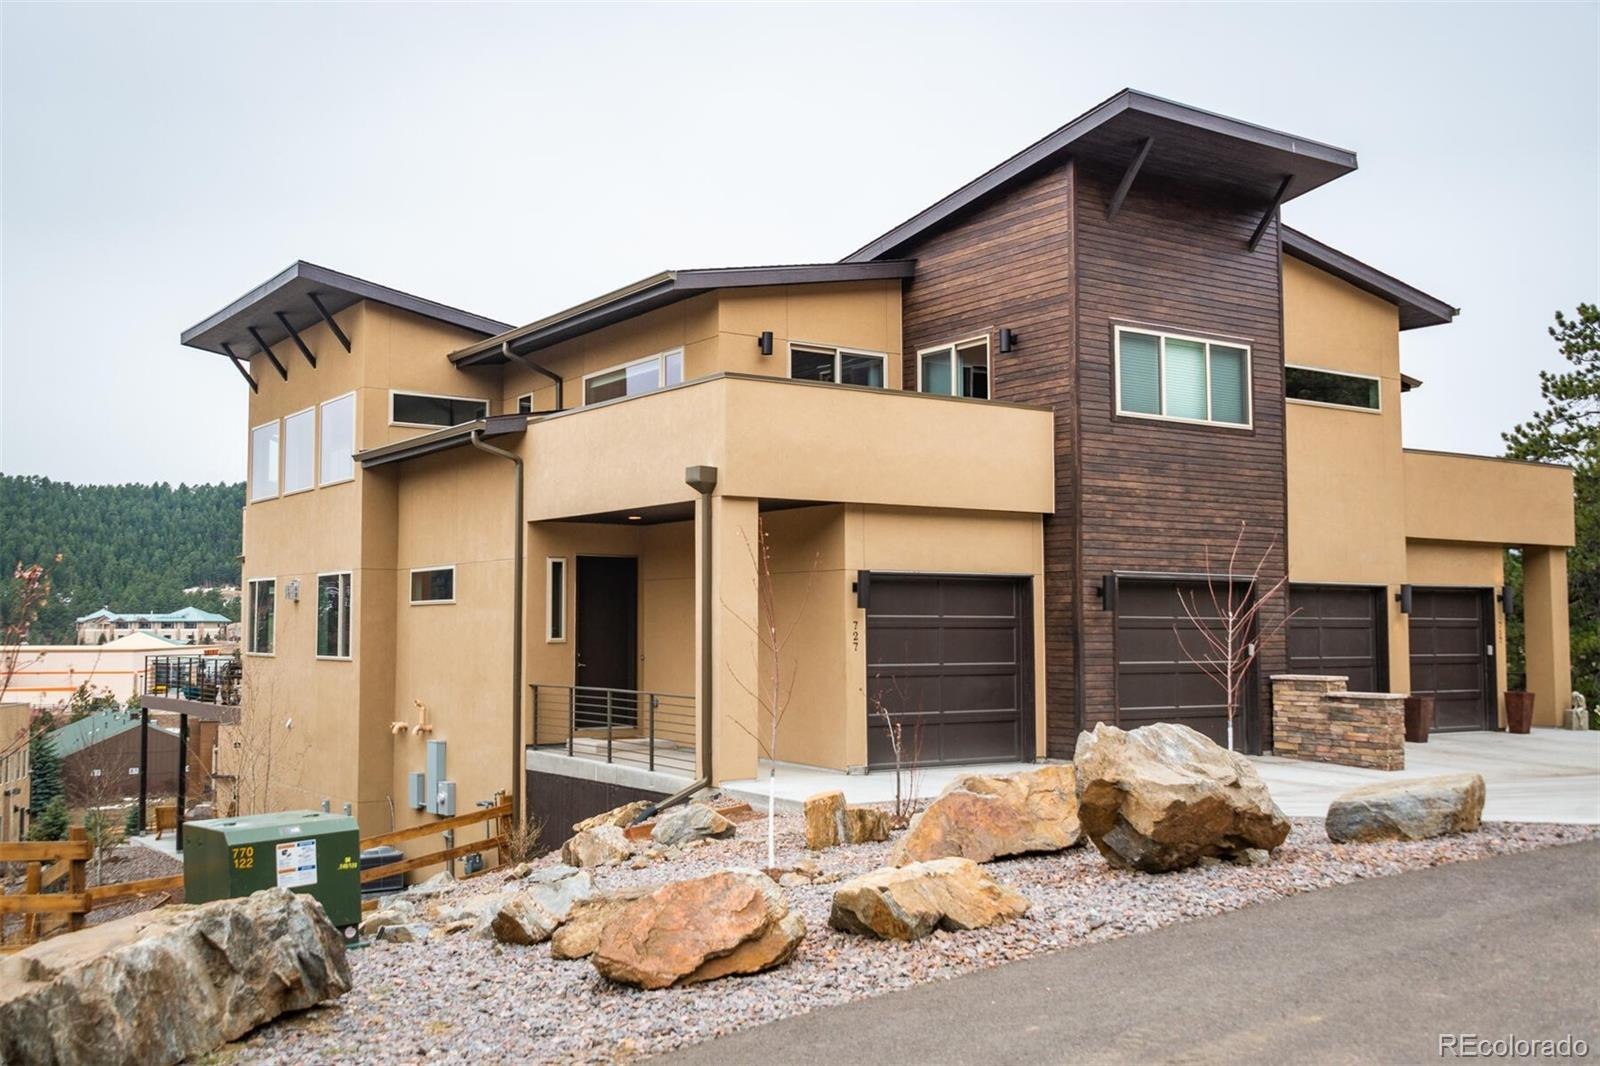 727 Dreamcatcher Lane, Evergreen, CO 80439 - #: 4359444